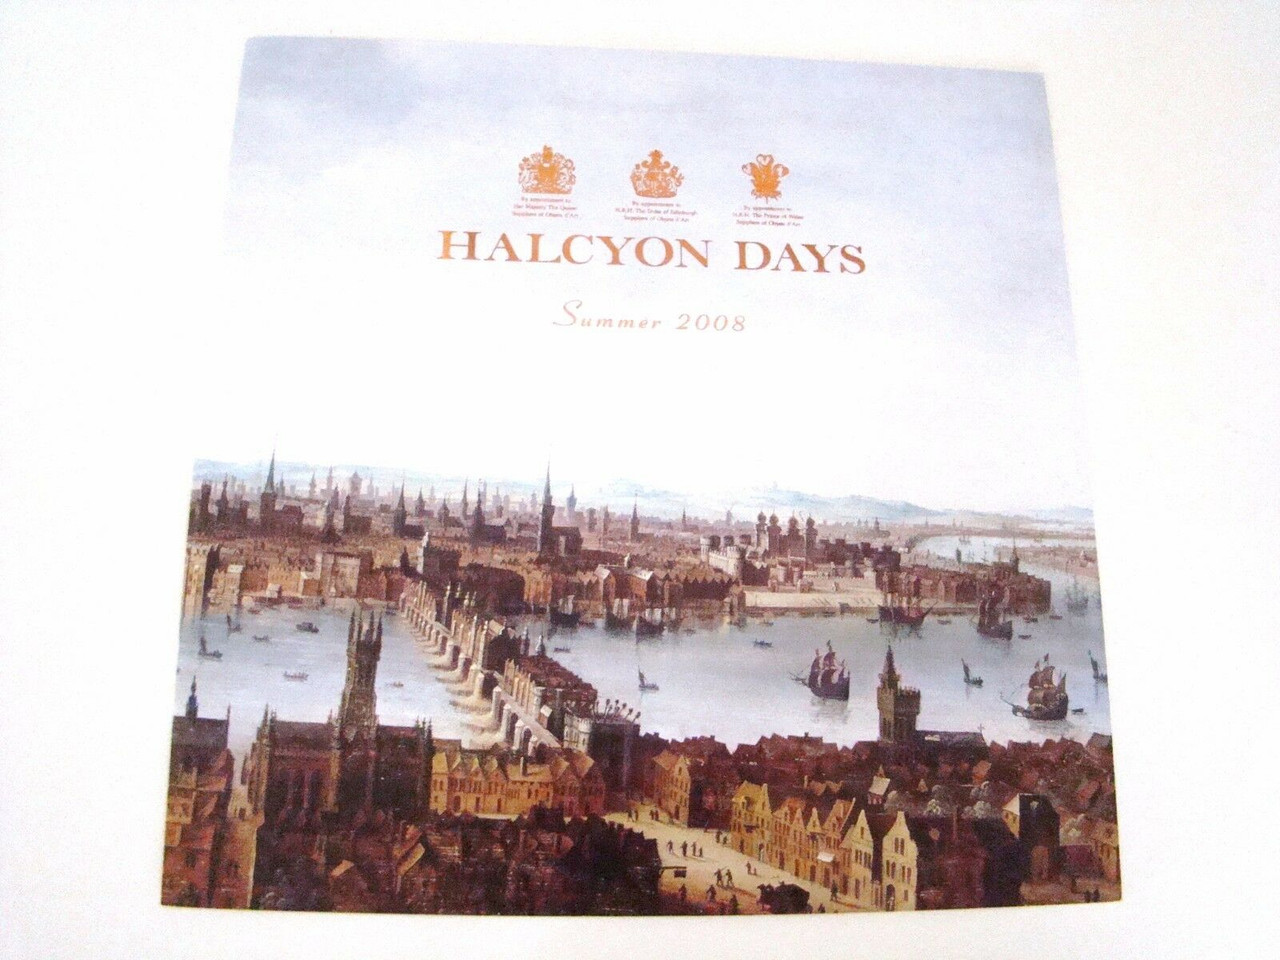 Halcyon Days Summer 2008 Catalog For Reference Only